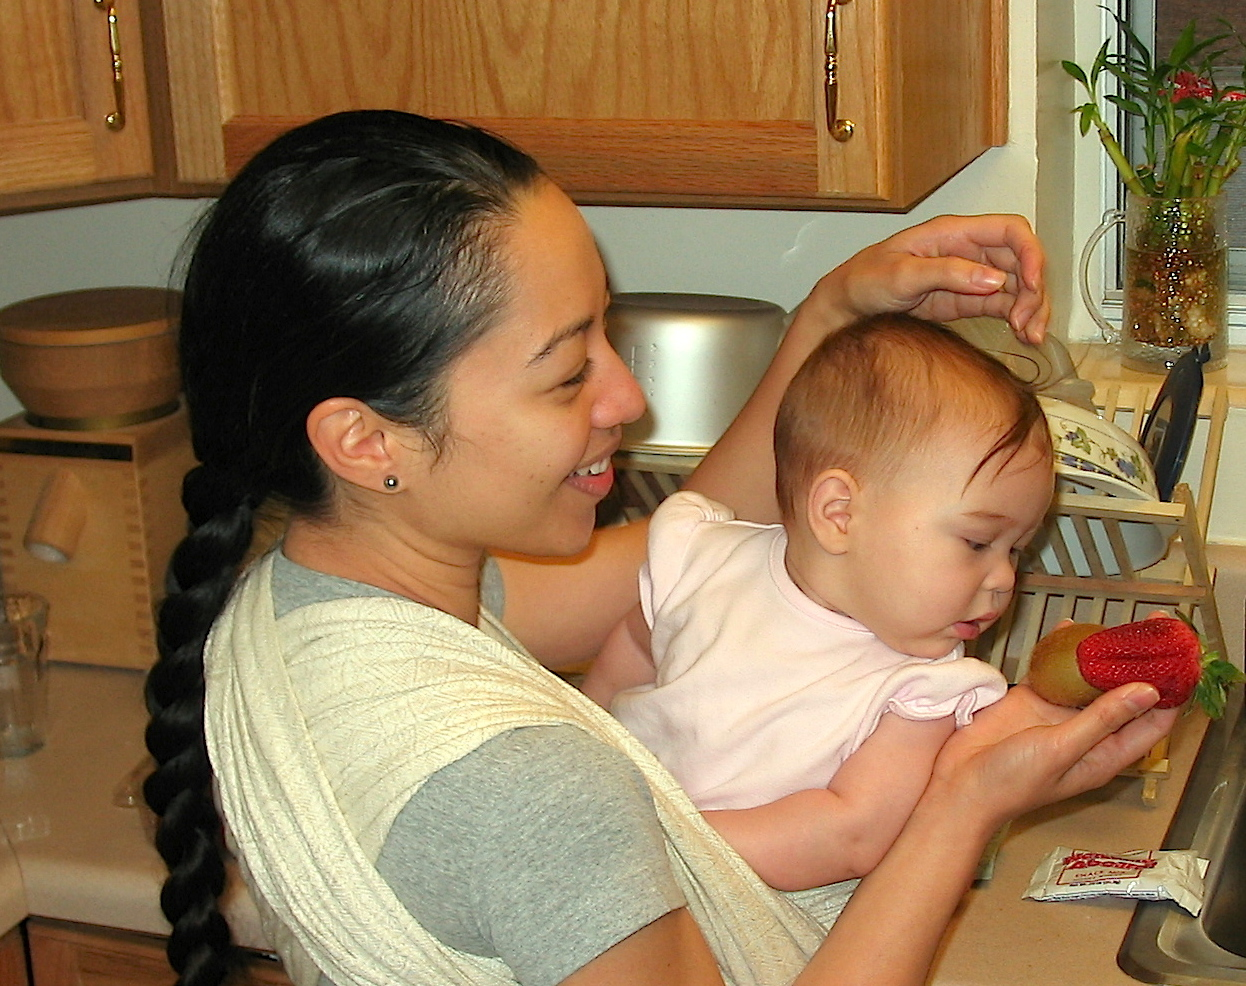 Florida 2004. Teaching baby Heistheway about what I was preparing in the kitchen